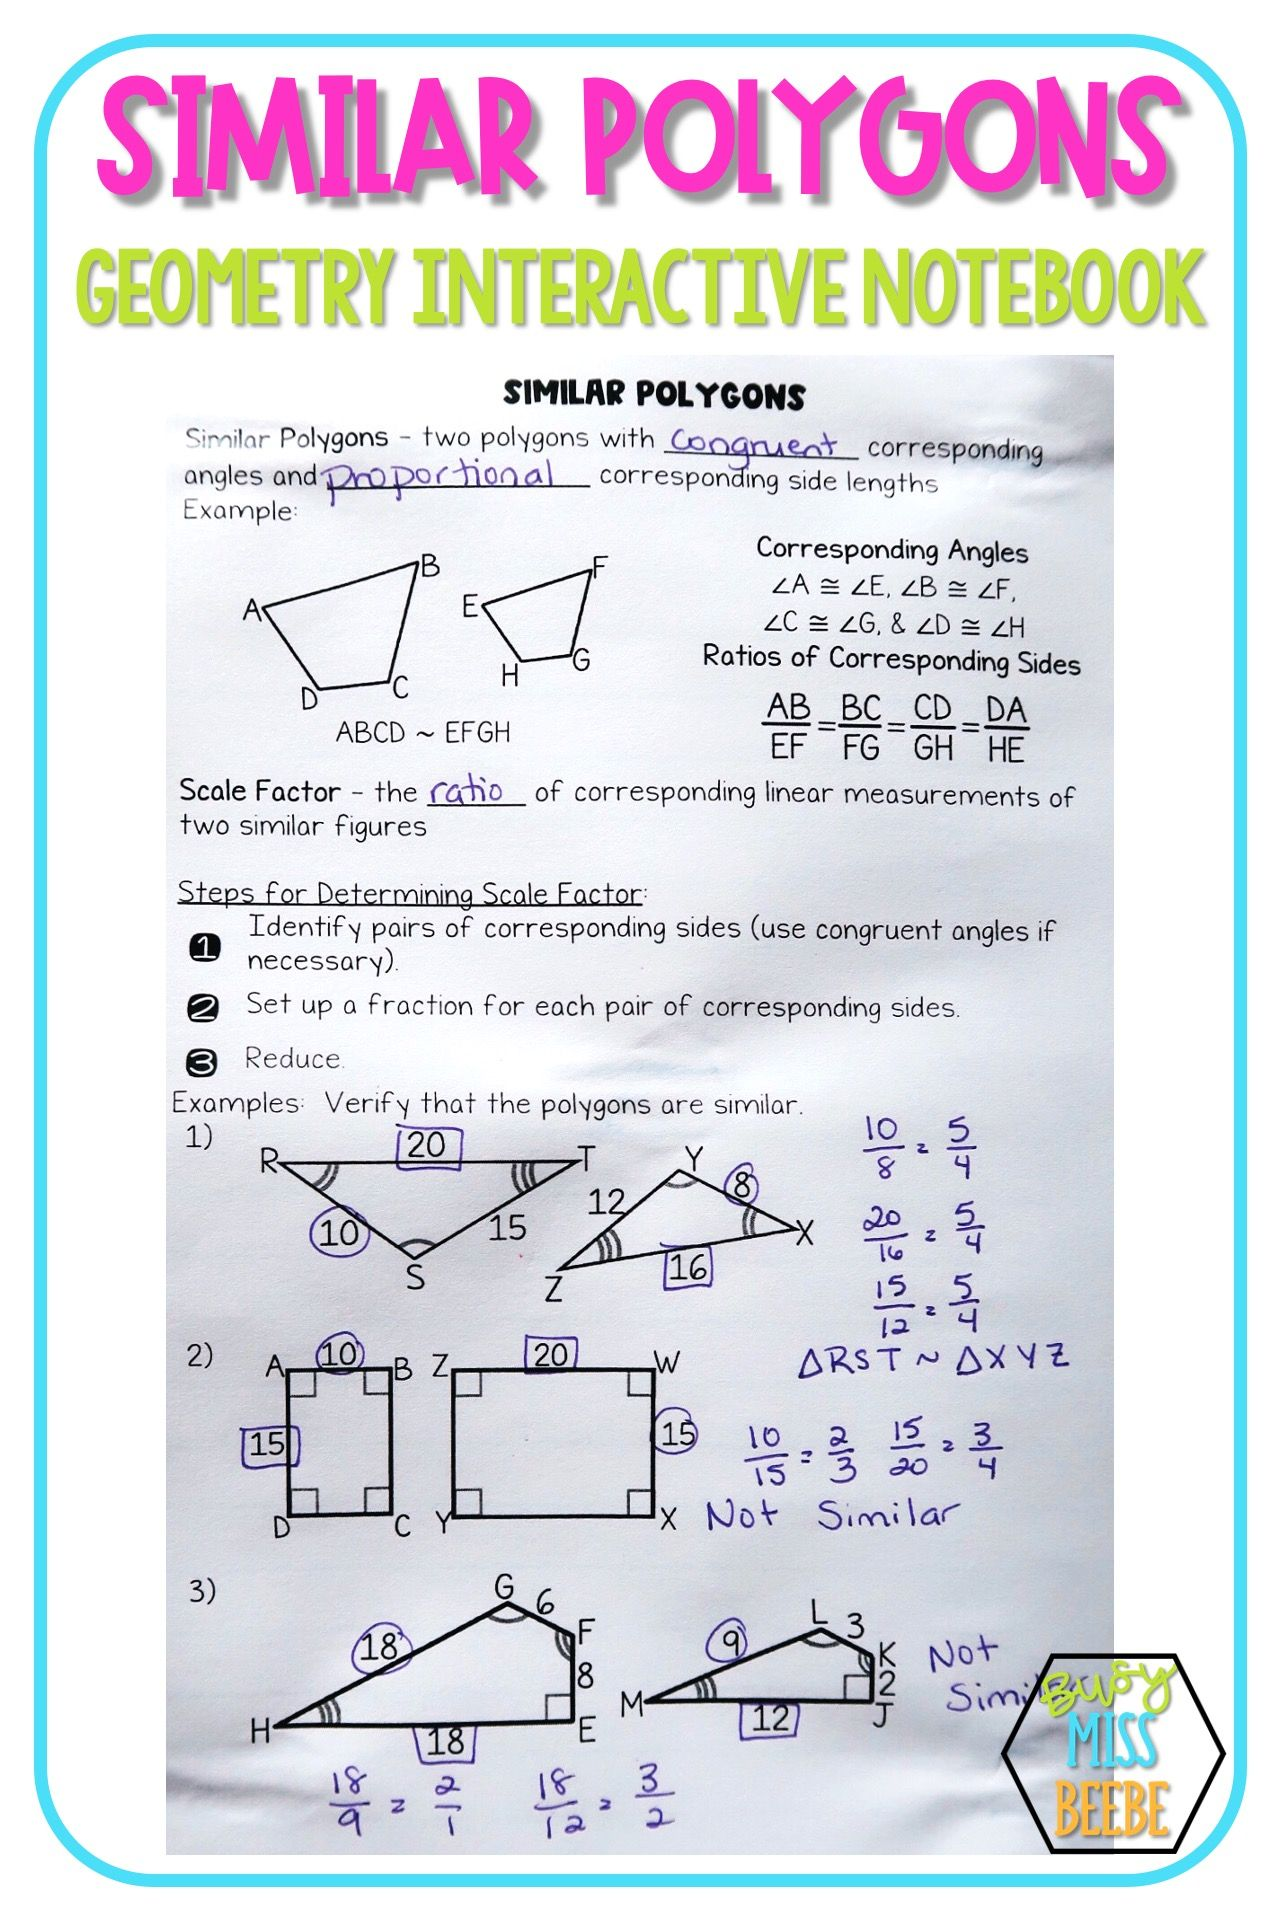 Geometry Interactive Notebook Similarity Busy Miss Beebe In 2020 Geometry Interactive Notebook Interactive Notebooks Math Word Problems